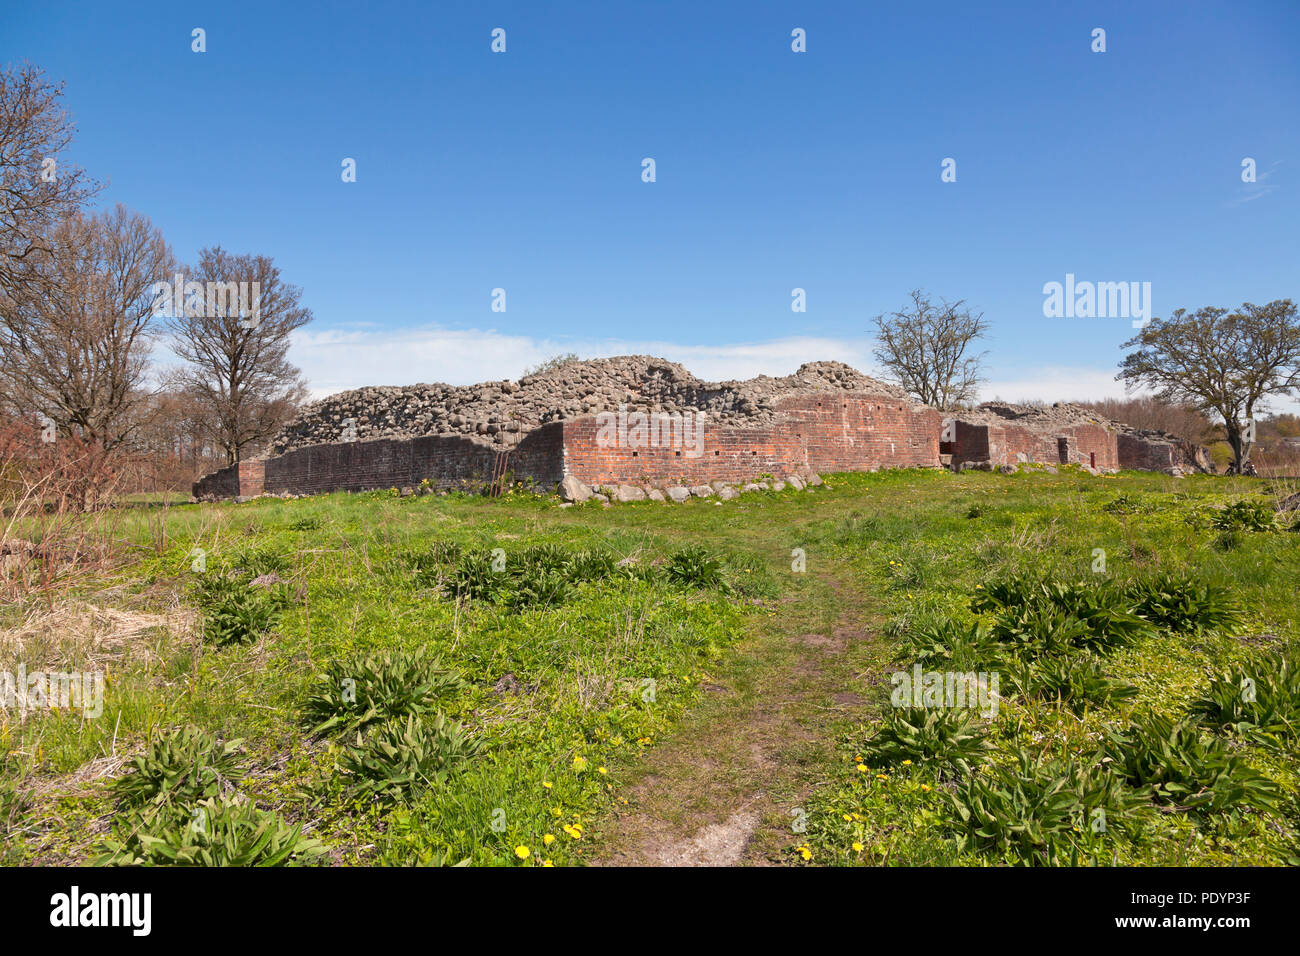 The Gurre Castle Ruin, a Royal castle from the 12th century in North Zealand near Elsinore, Helsingør, in Denmark from the early medieval times.Stock Photo